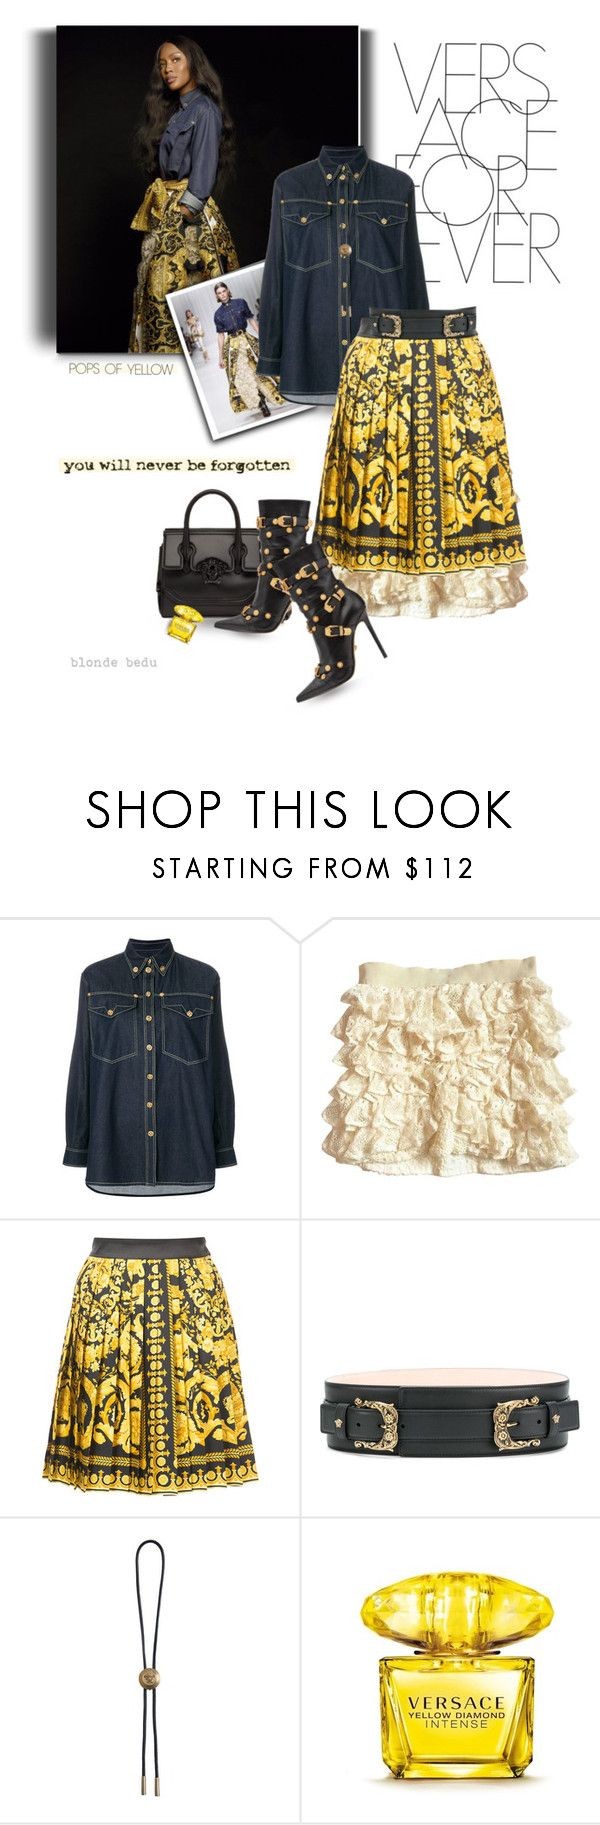 """What defines luxury is uniqueness, emotions & desire"" by blonde-bedu ❤ liked on Polyvore featuring Versace and Isabel Marant"